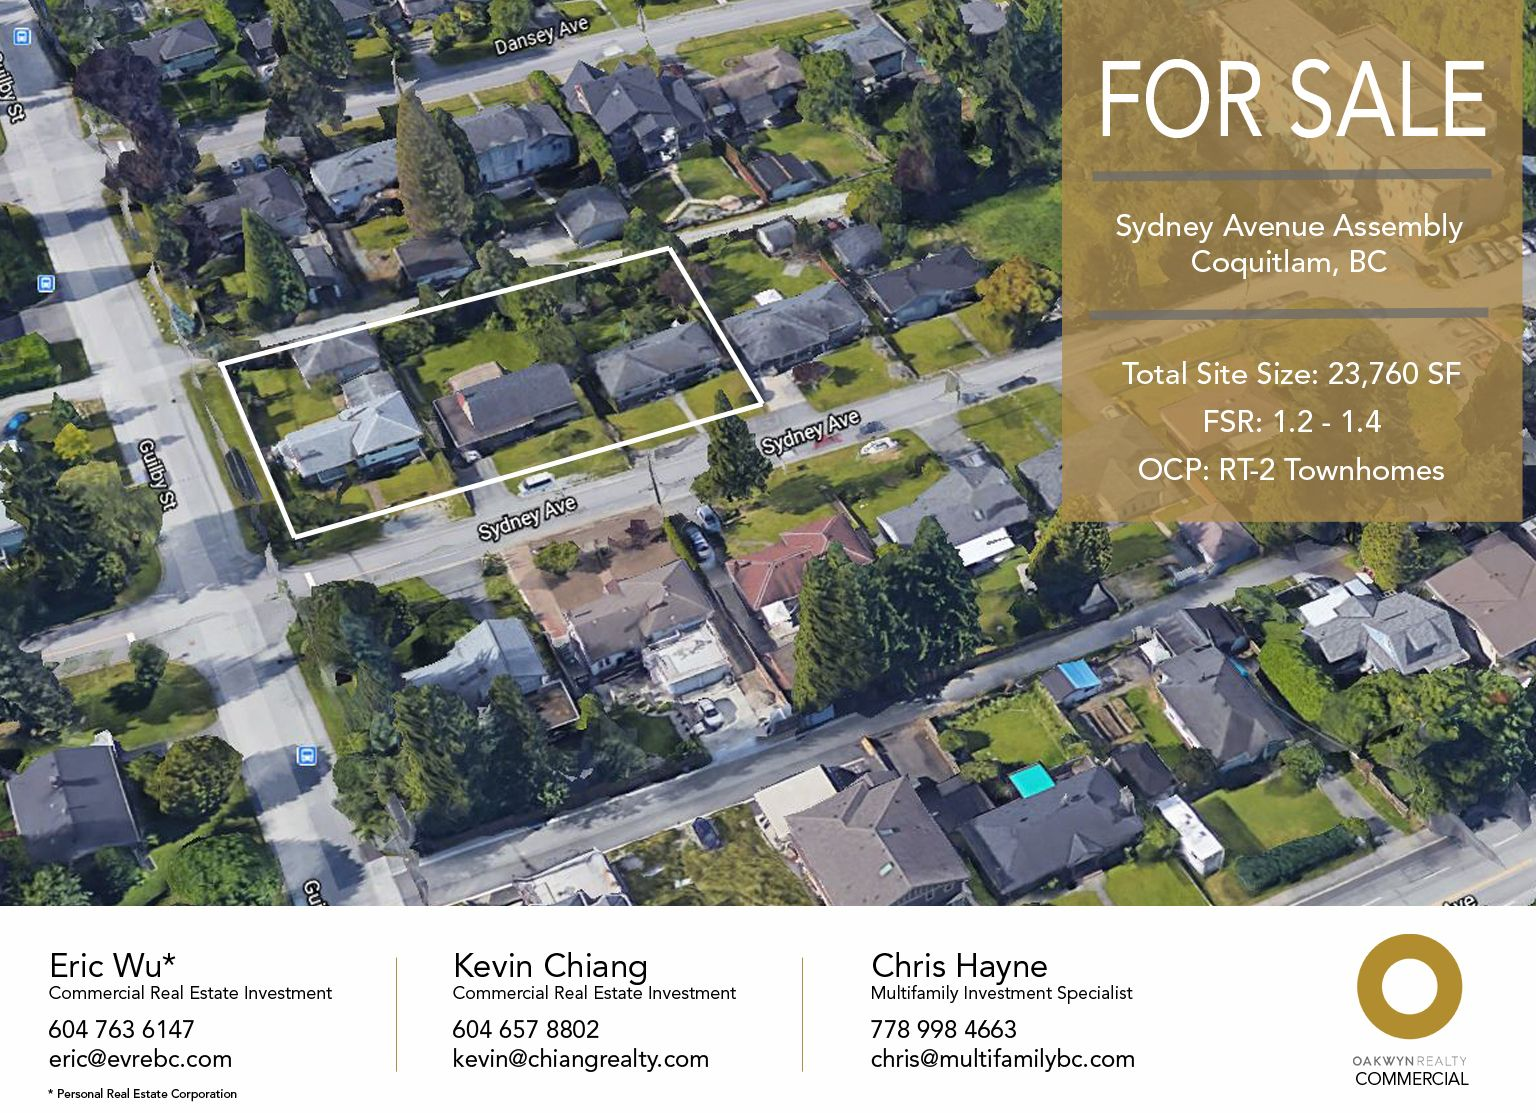 Main Photo: 604-608 Sydney Avenue in Coquitlam: Coquitlam West Land Commercial for sale